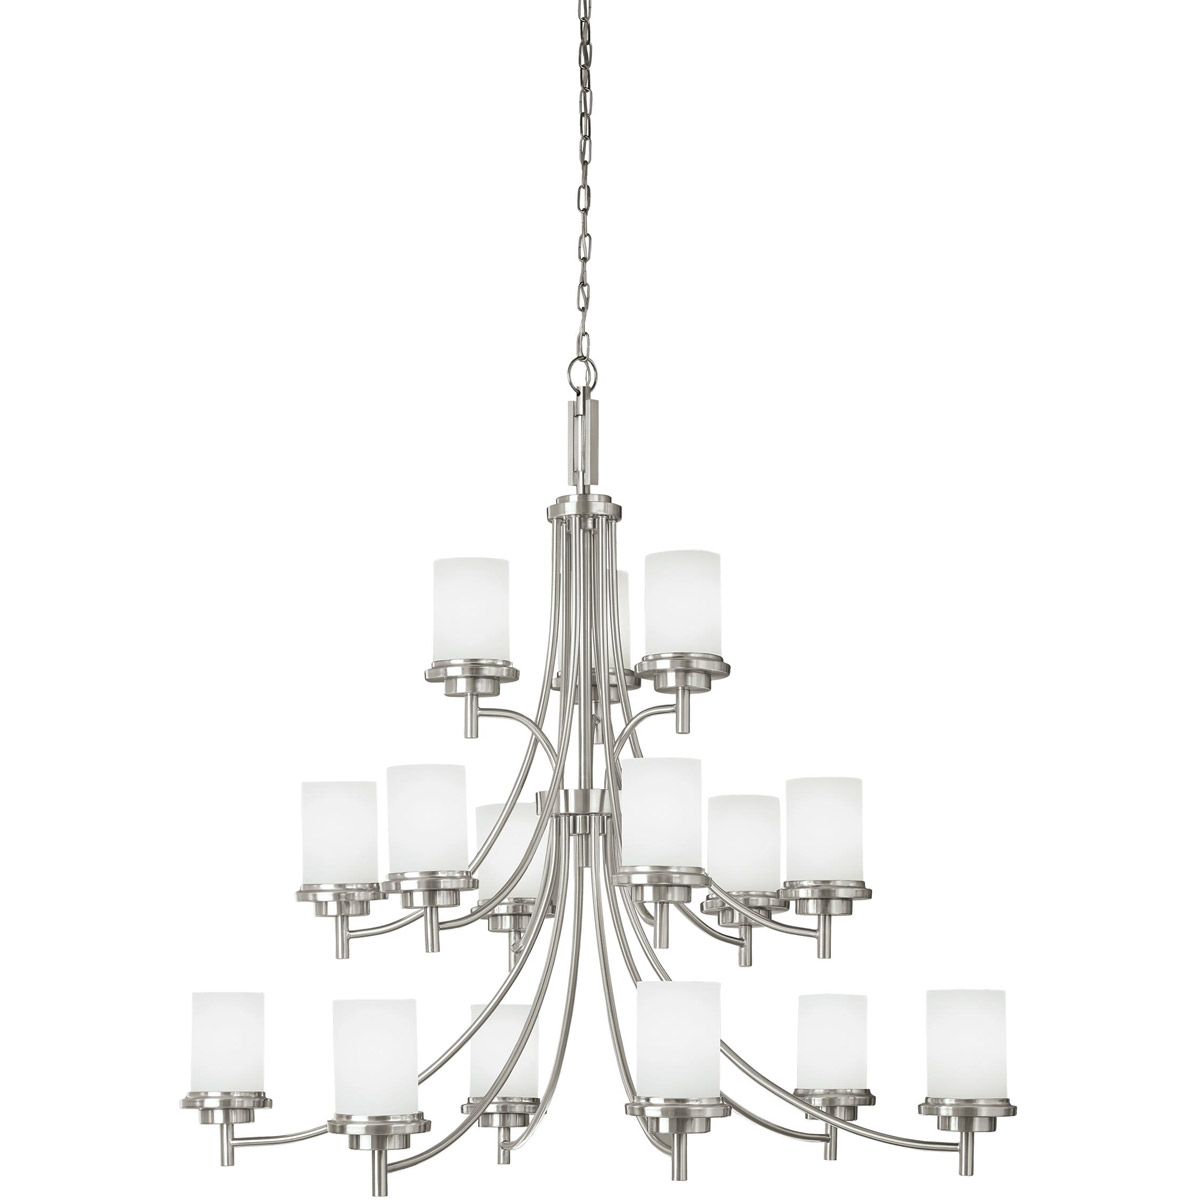 Sea Gull 31663-962 Winnetka 15 Light 47 inch Brushed Nickel Chandelier Multi-Tier Ceiling Light in Satin Etched Glass, Standard photo